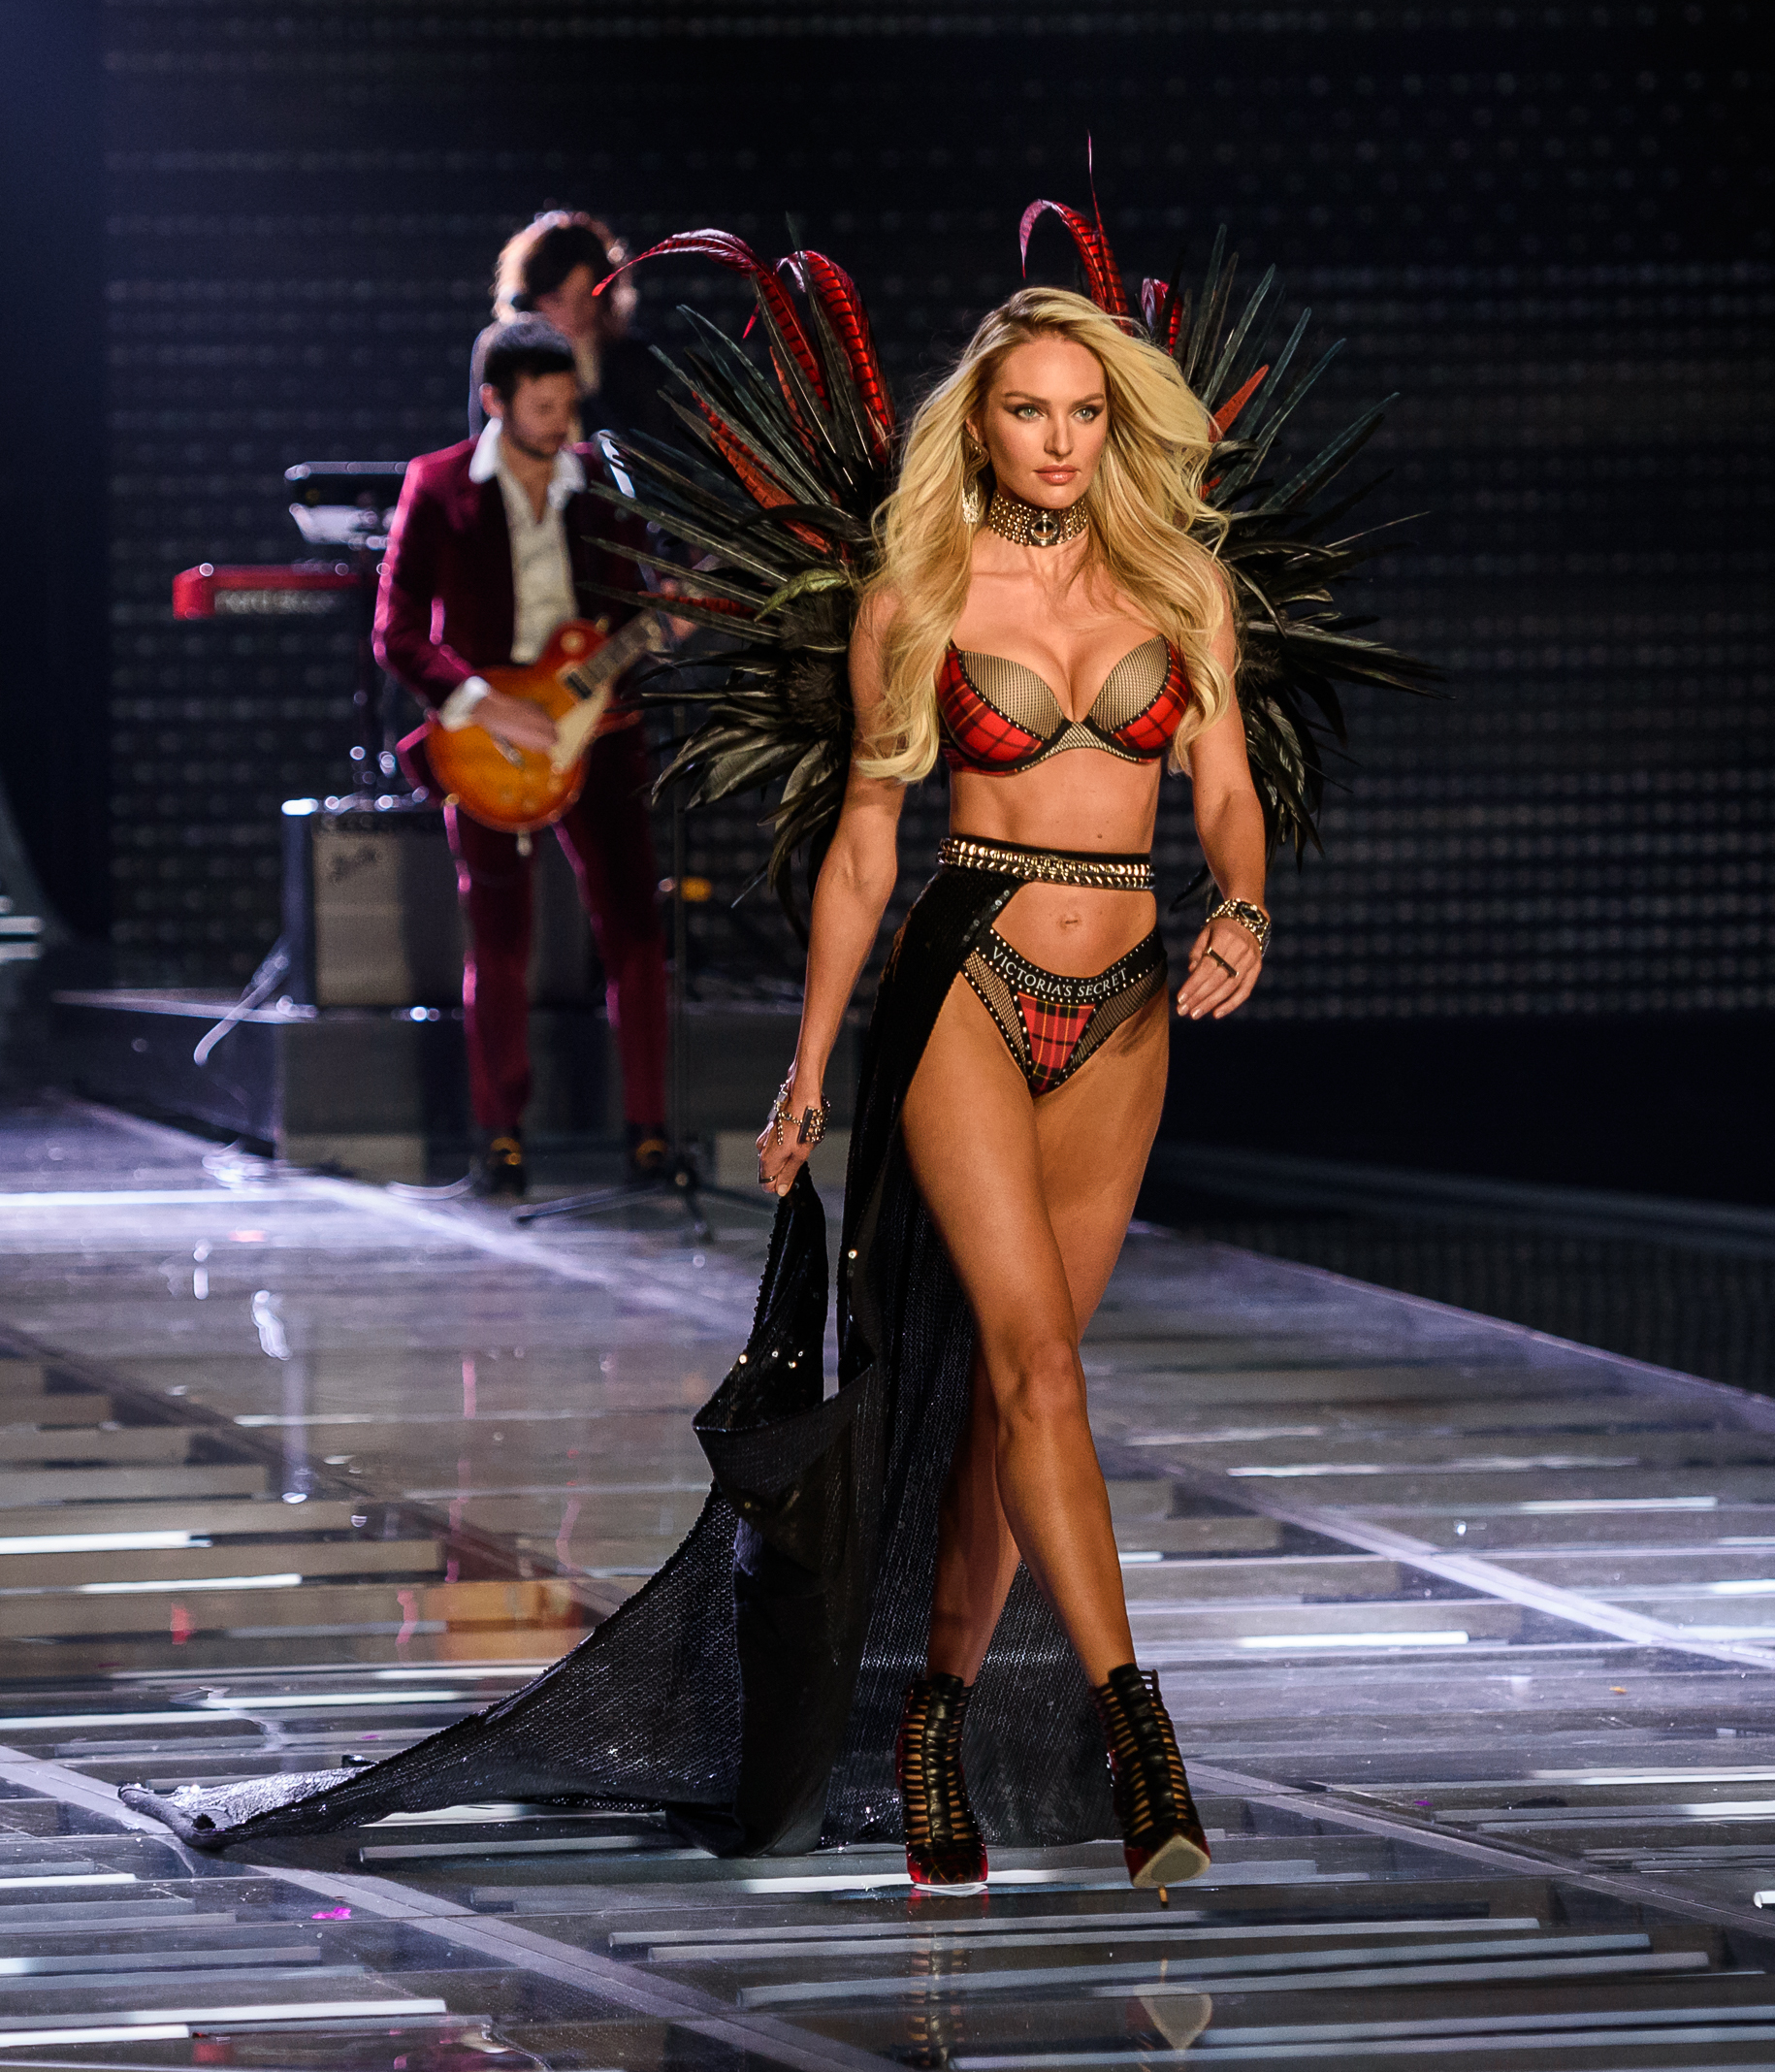 Victoria's Secret Fashion Show 2017 - Runway                                    Featuring: Candice Swanepoel                  Where: Shanghai, China                  When: 20 Nov 2017                  Credit: WENN.com